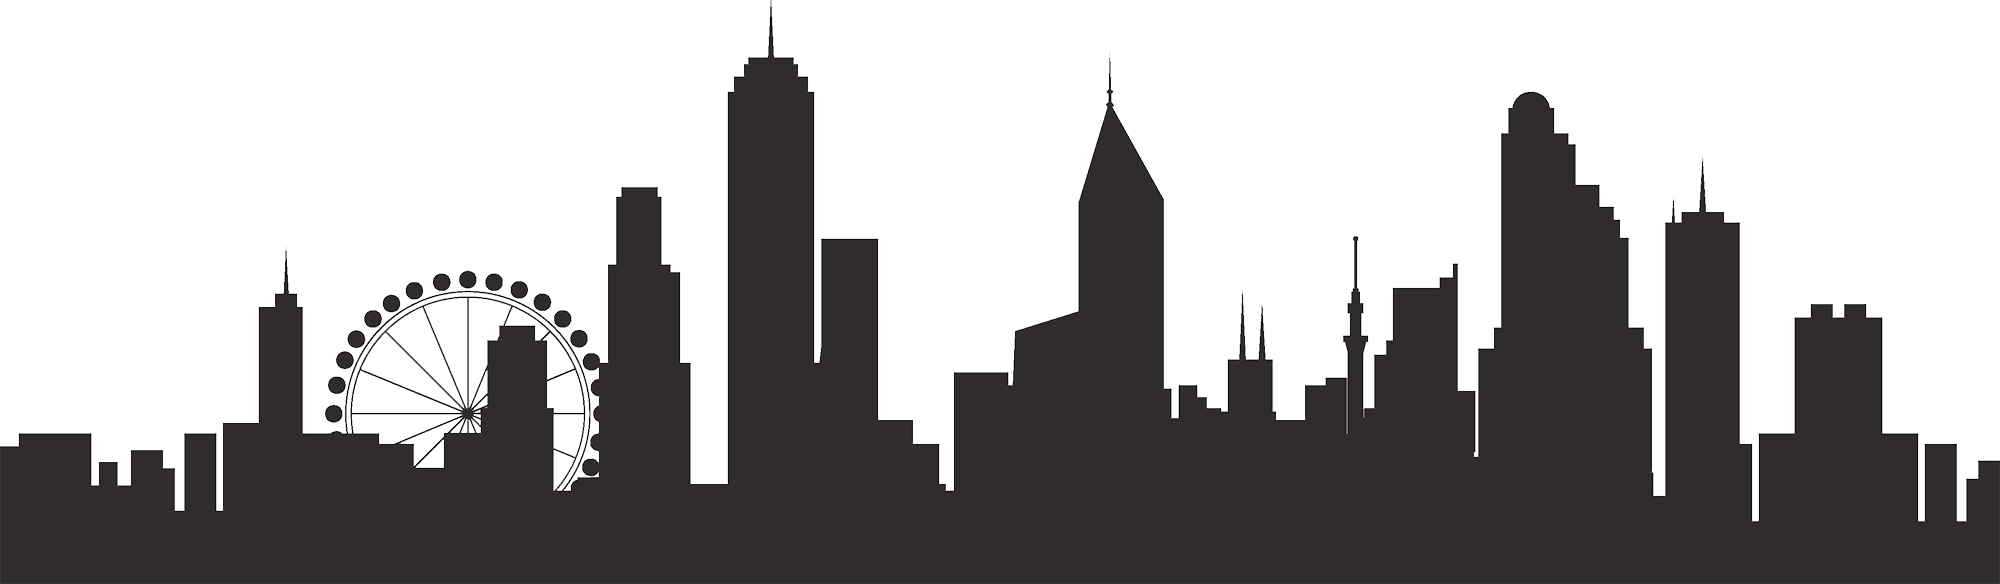 Atlanta skyline clipart clip freeuse download Employment | State Farm Arena clip freeuse download